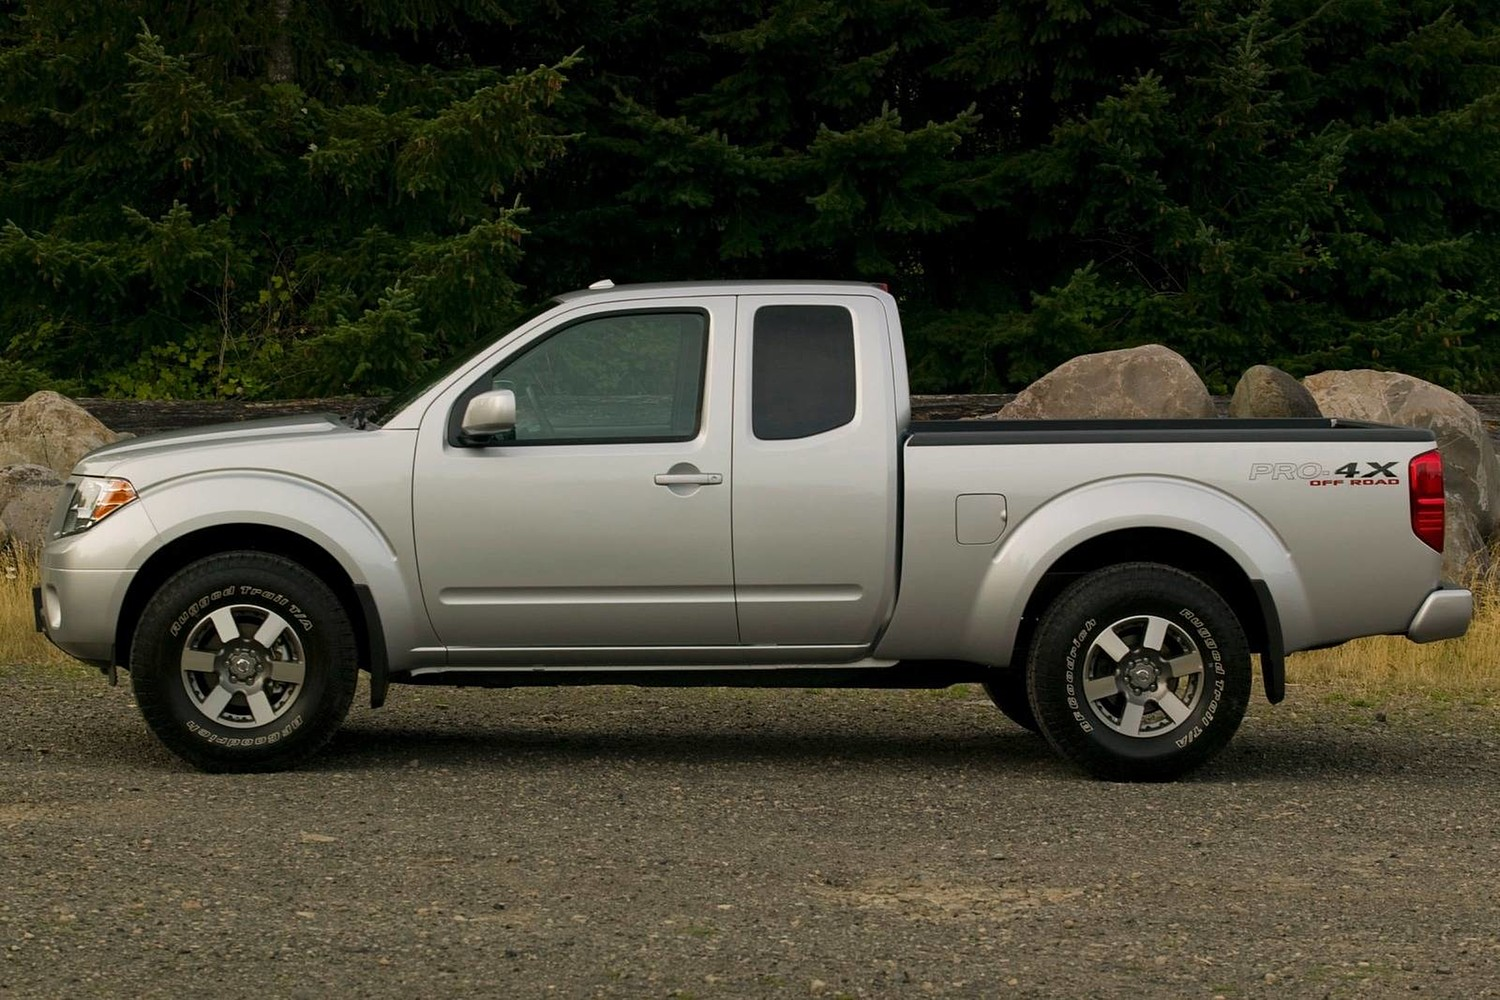 2016 Nissan Frontier PRO-4X Extended Cab Pickup Exterior Shown